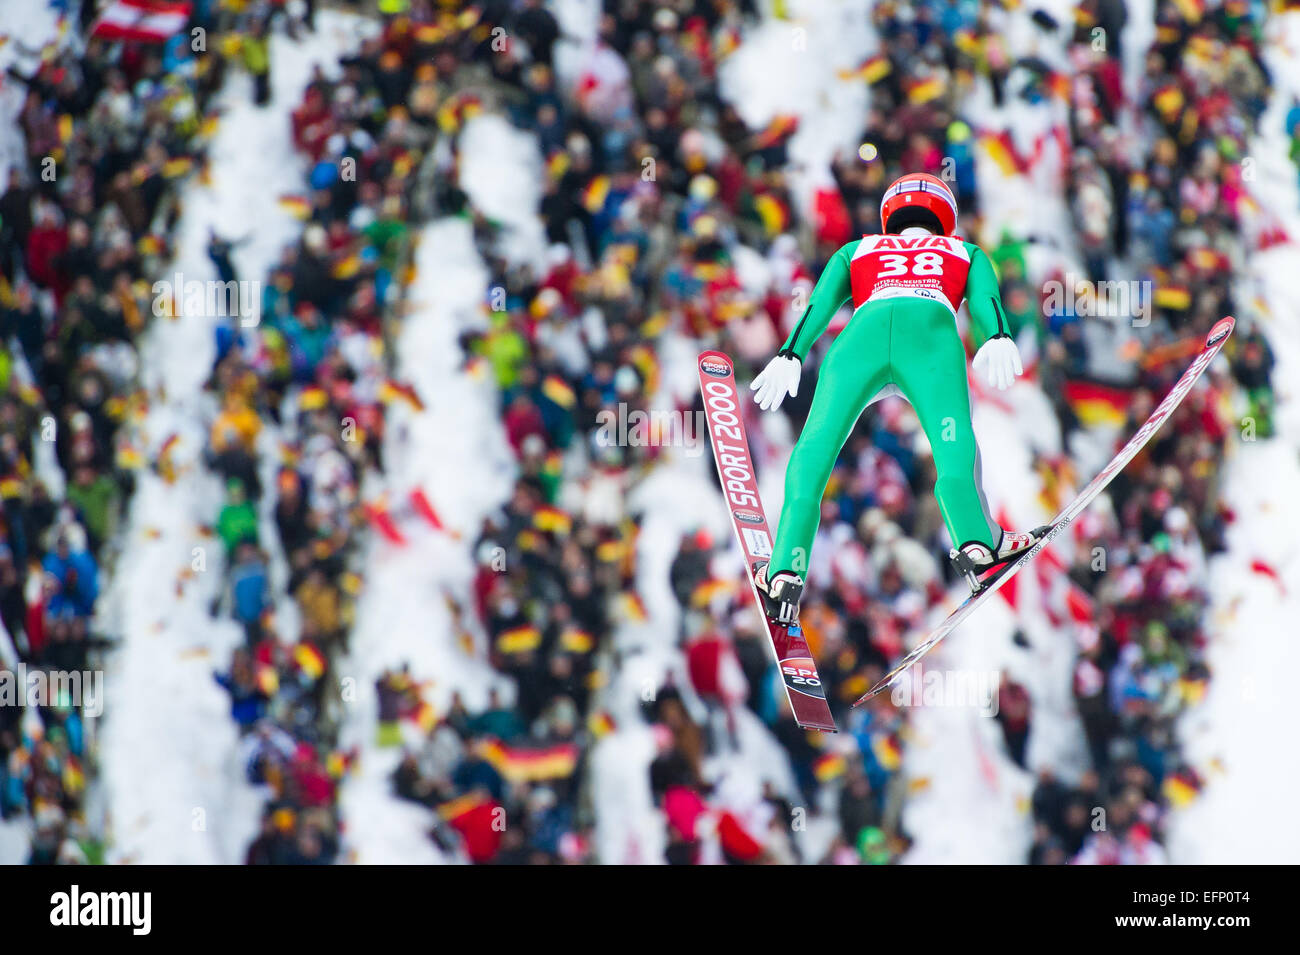 Titisee, Germany. 8th February, 2015. Stephan Leyhe (GER) competes in front of home crowd during the Large Hill Individual competition on day two of the FIS Ski Jumping World Cup on February 8, 2015 in Titisee, Germany. Credit:  Miroslav Dakov/Alamy Live News Stock Photo